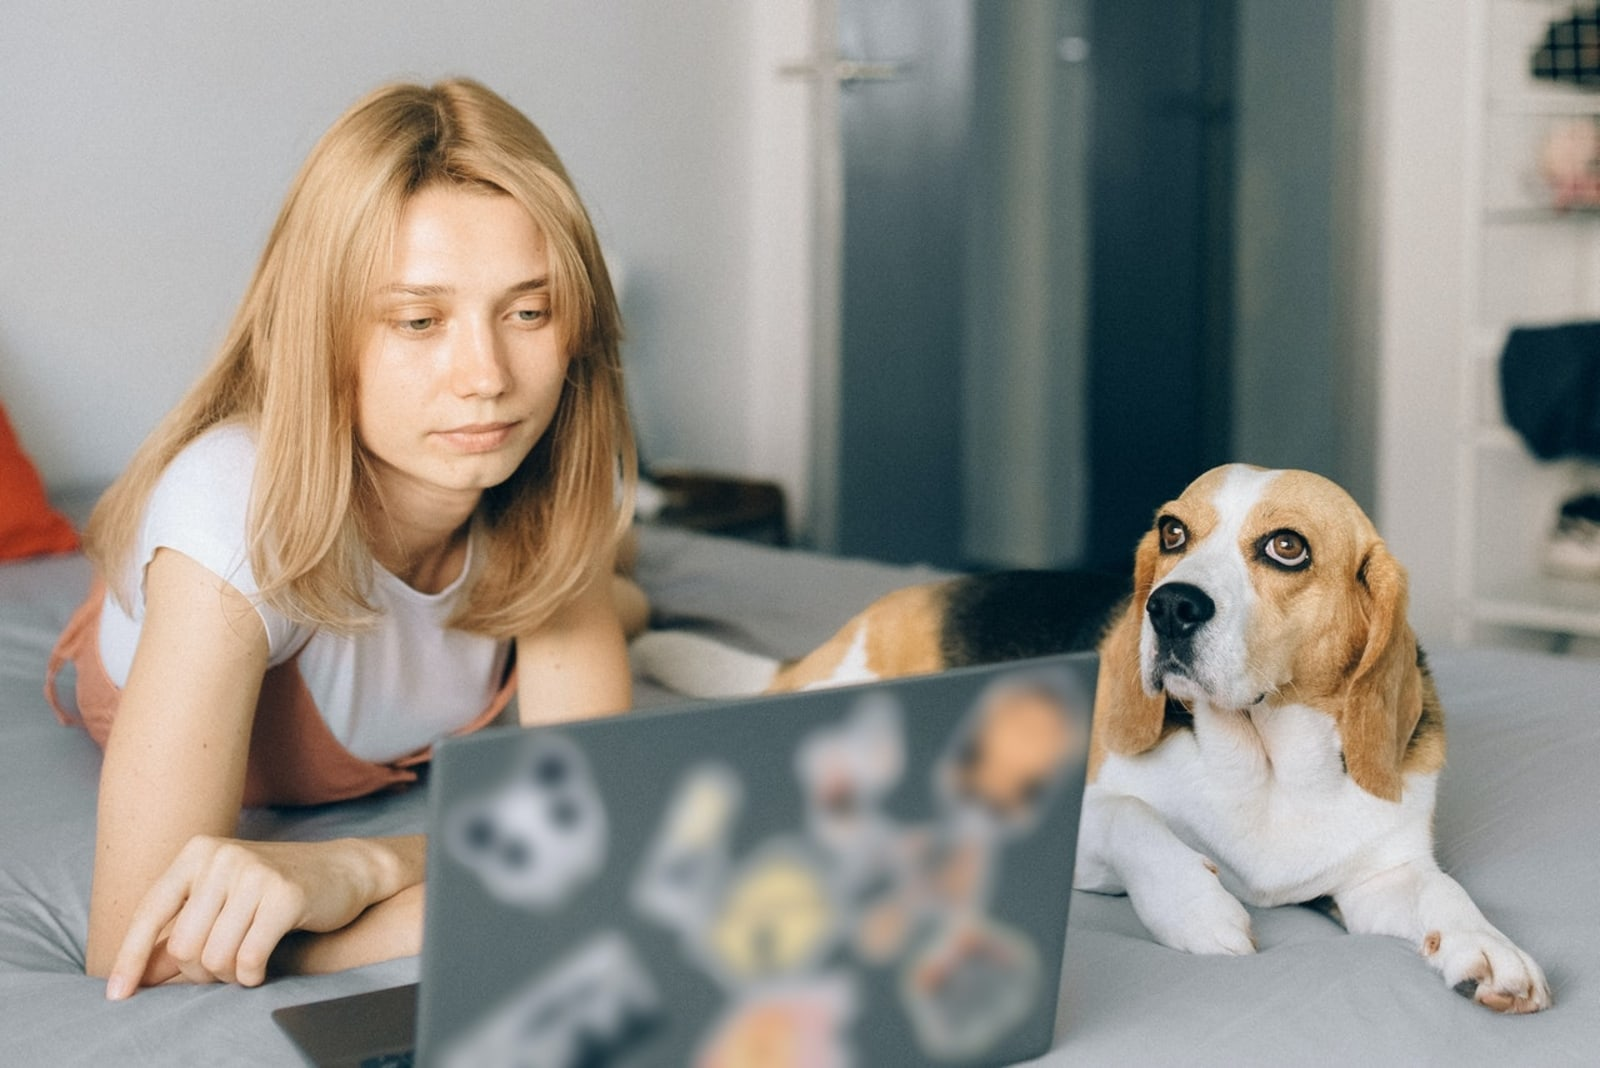 woman looking at laptop while laying on bed near dog